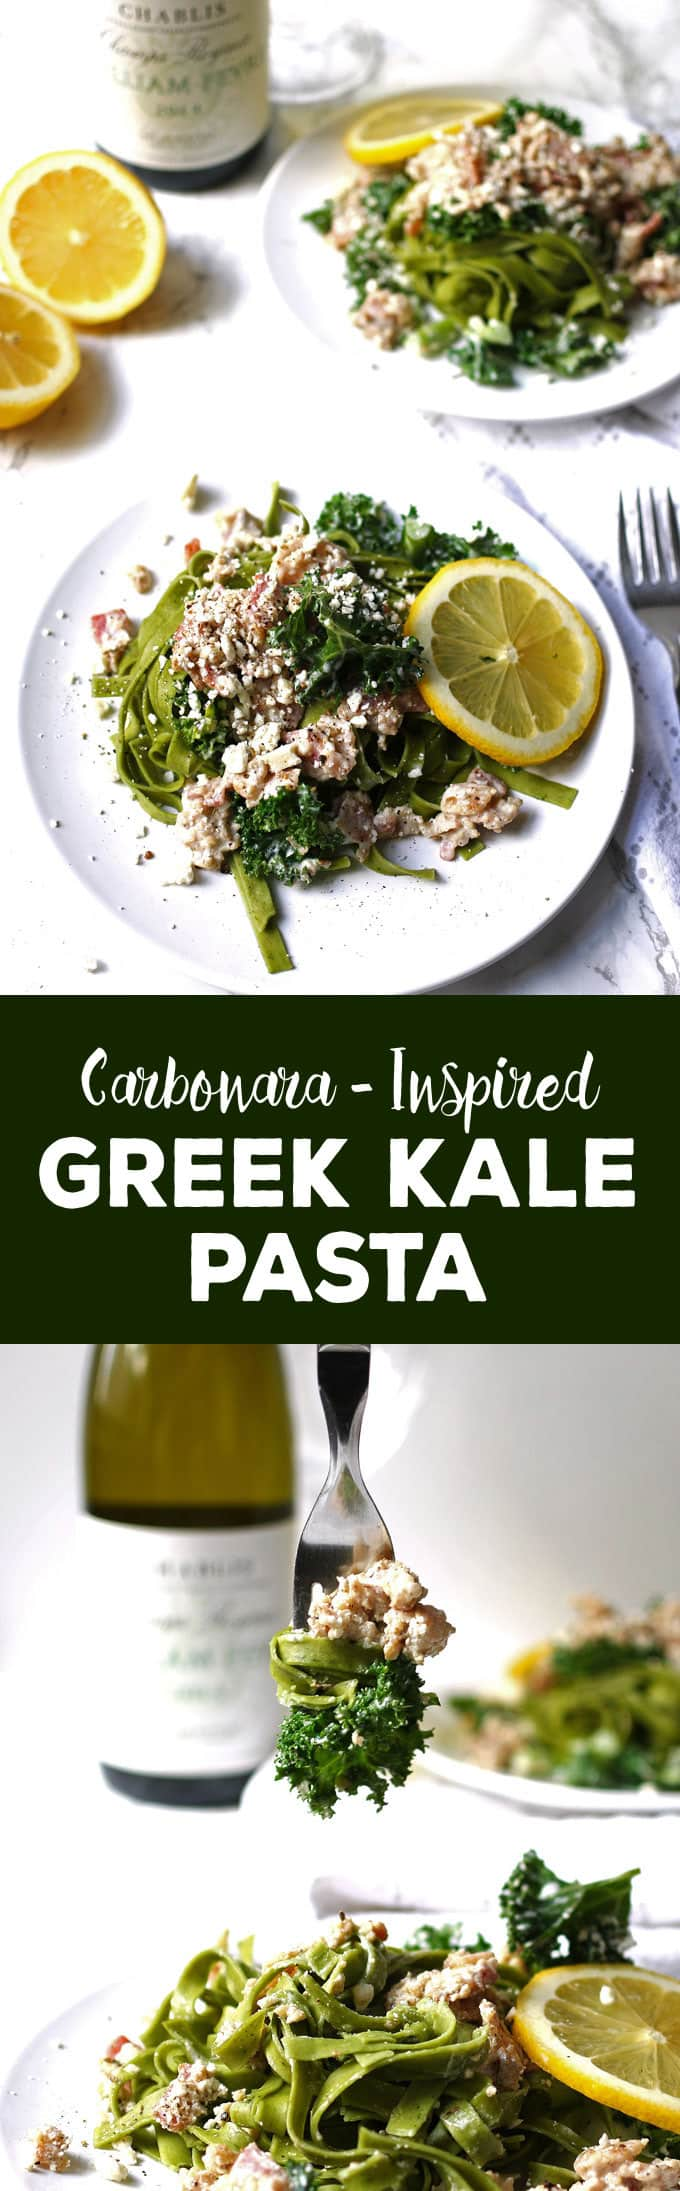 This carbonara-inspired Greek kale pasta is a one-of-a-kind pasta dinner. The flavors of carbonara sauce (bacon!) are combined with elements of Greek cuisine for a savory and delicious dish.   honeyandbirch.com